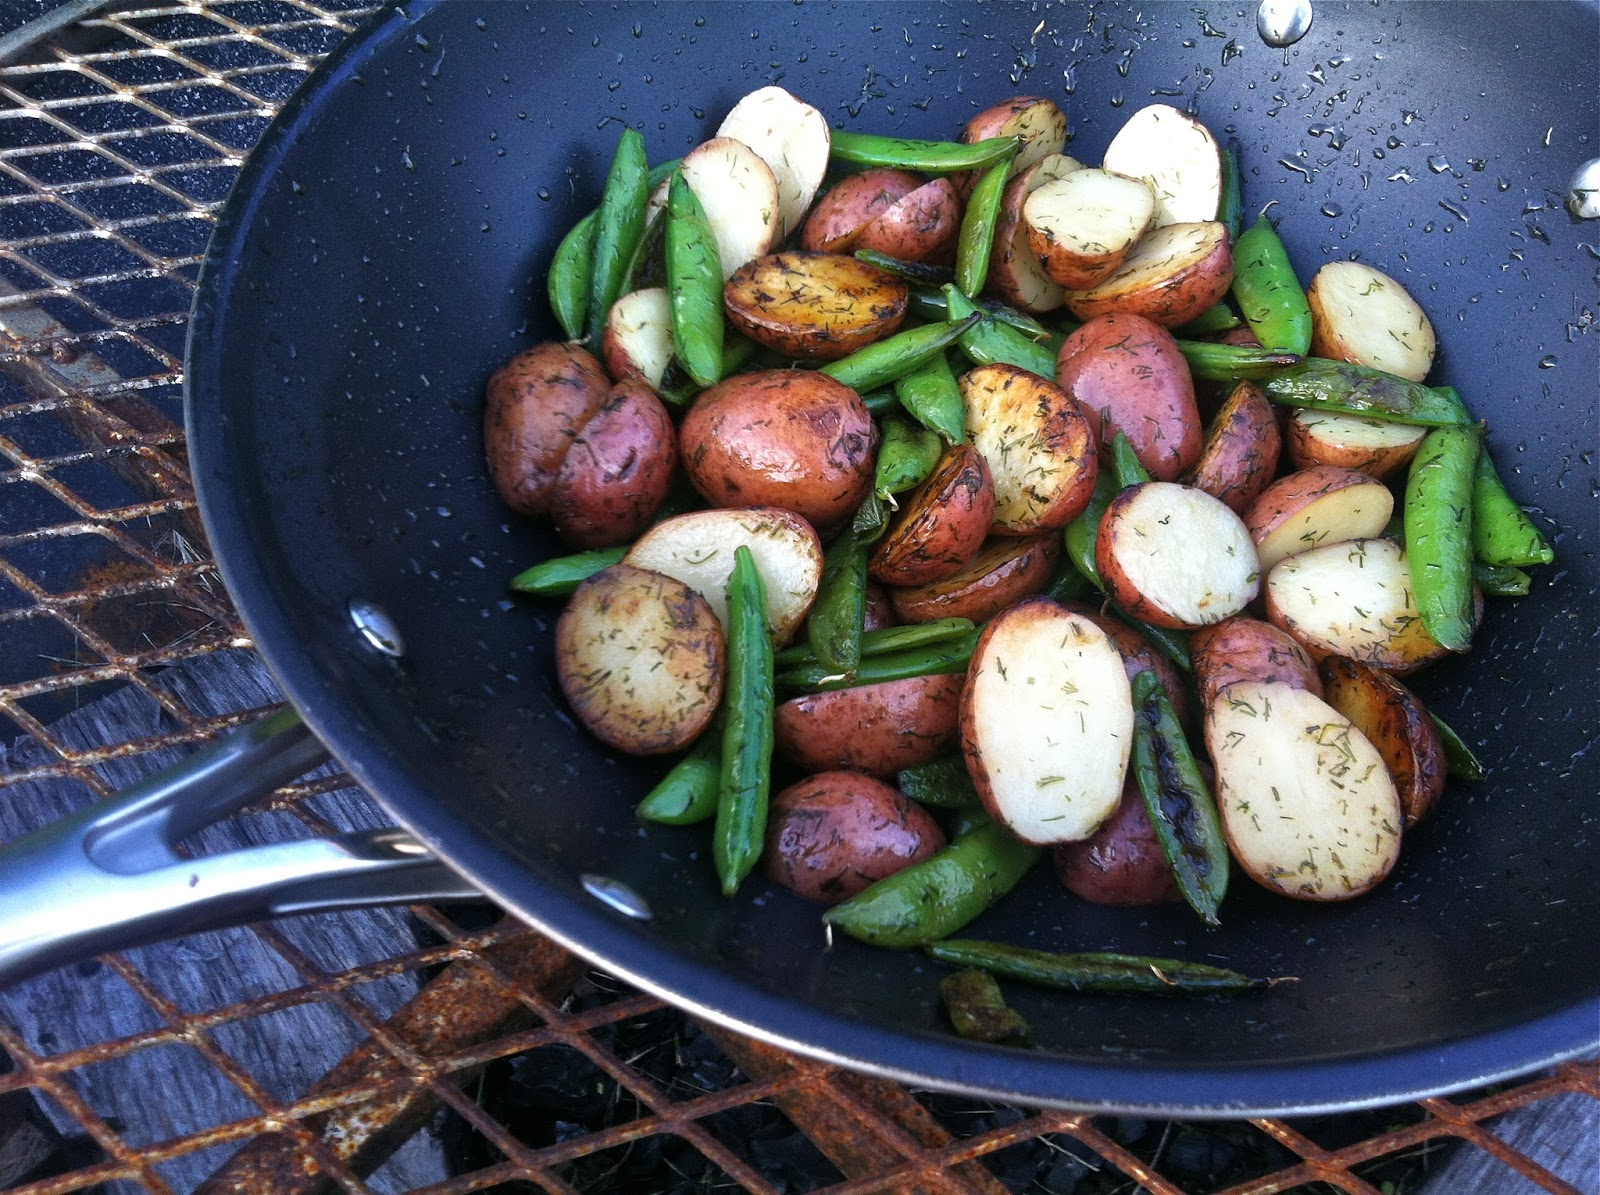 The Lifestyle Notebook : Dill Potatoes & Sugar Snap Peas